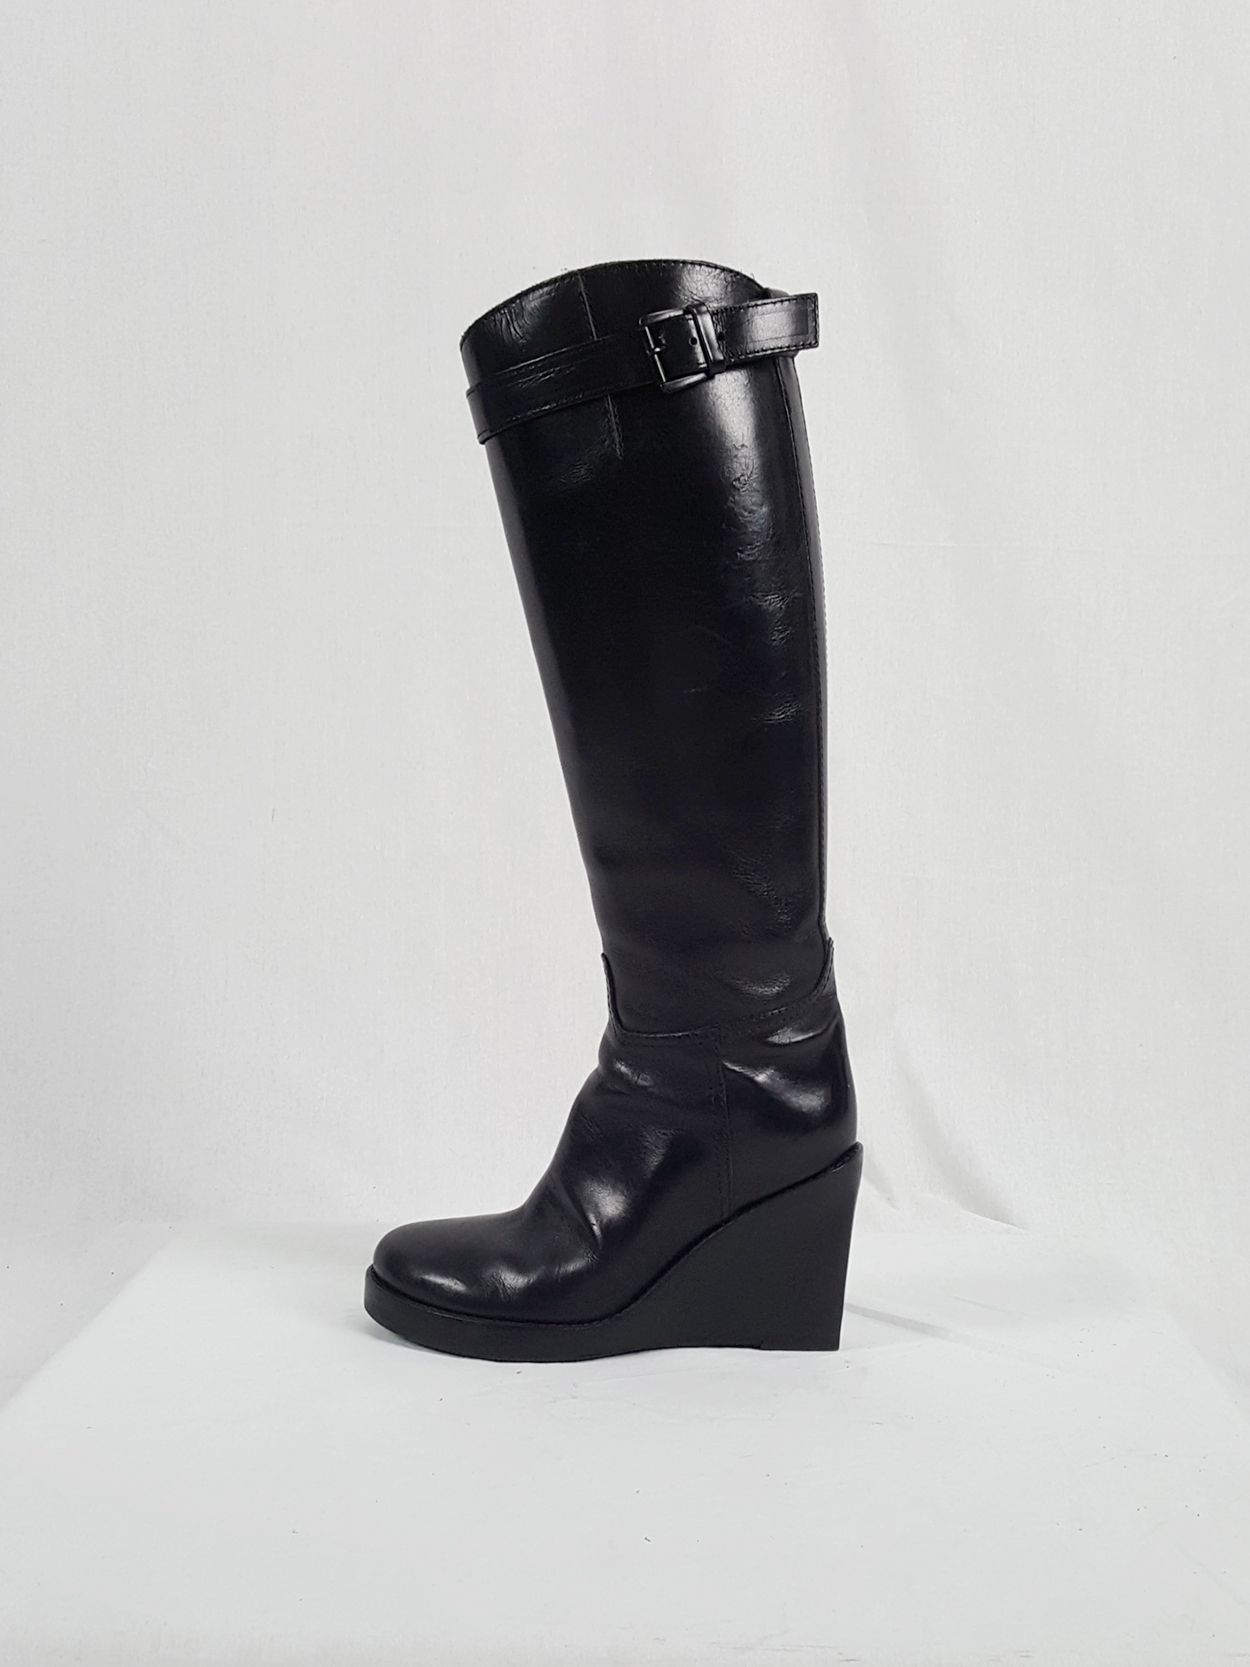 vaniitas vintage Ann Demeulemeester tall black wedge boots with belt strap detail 153807